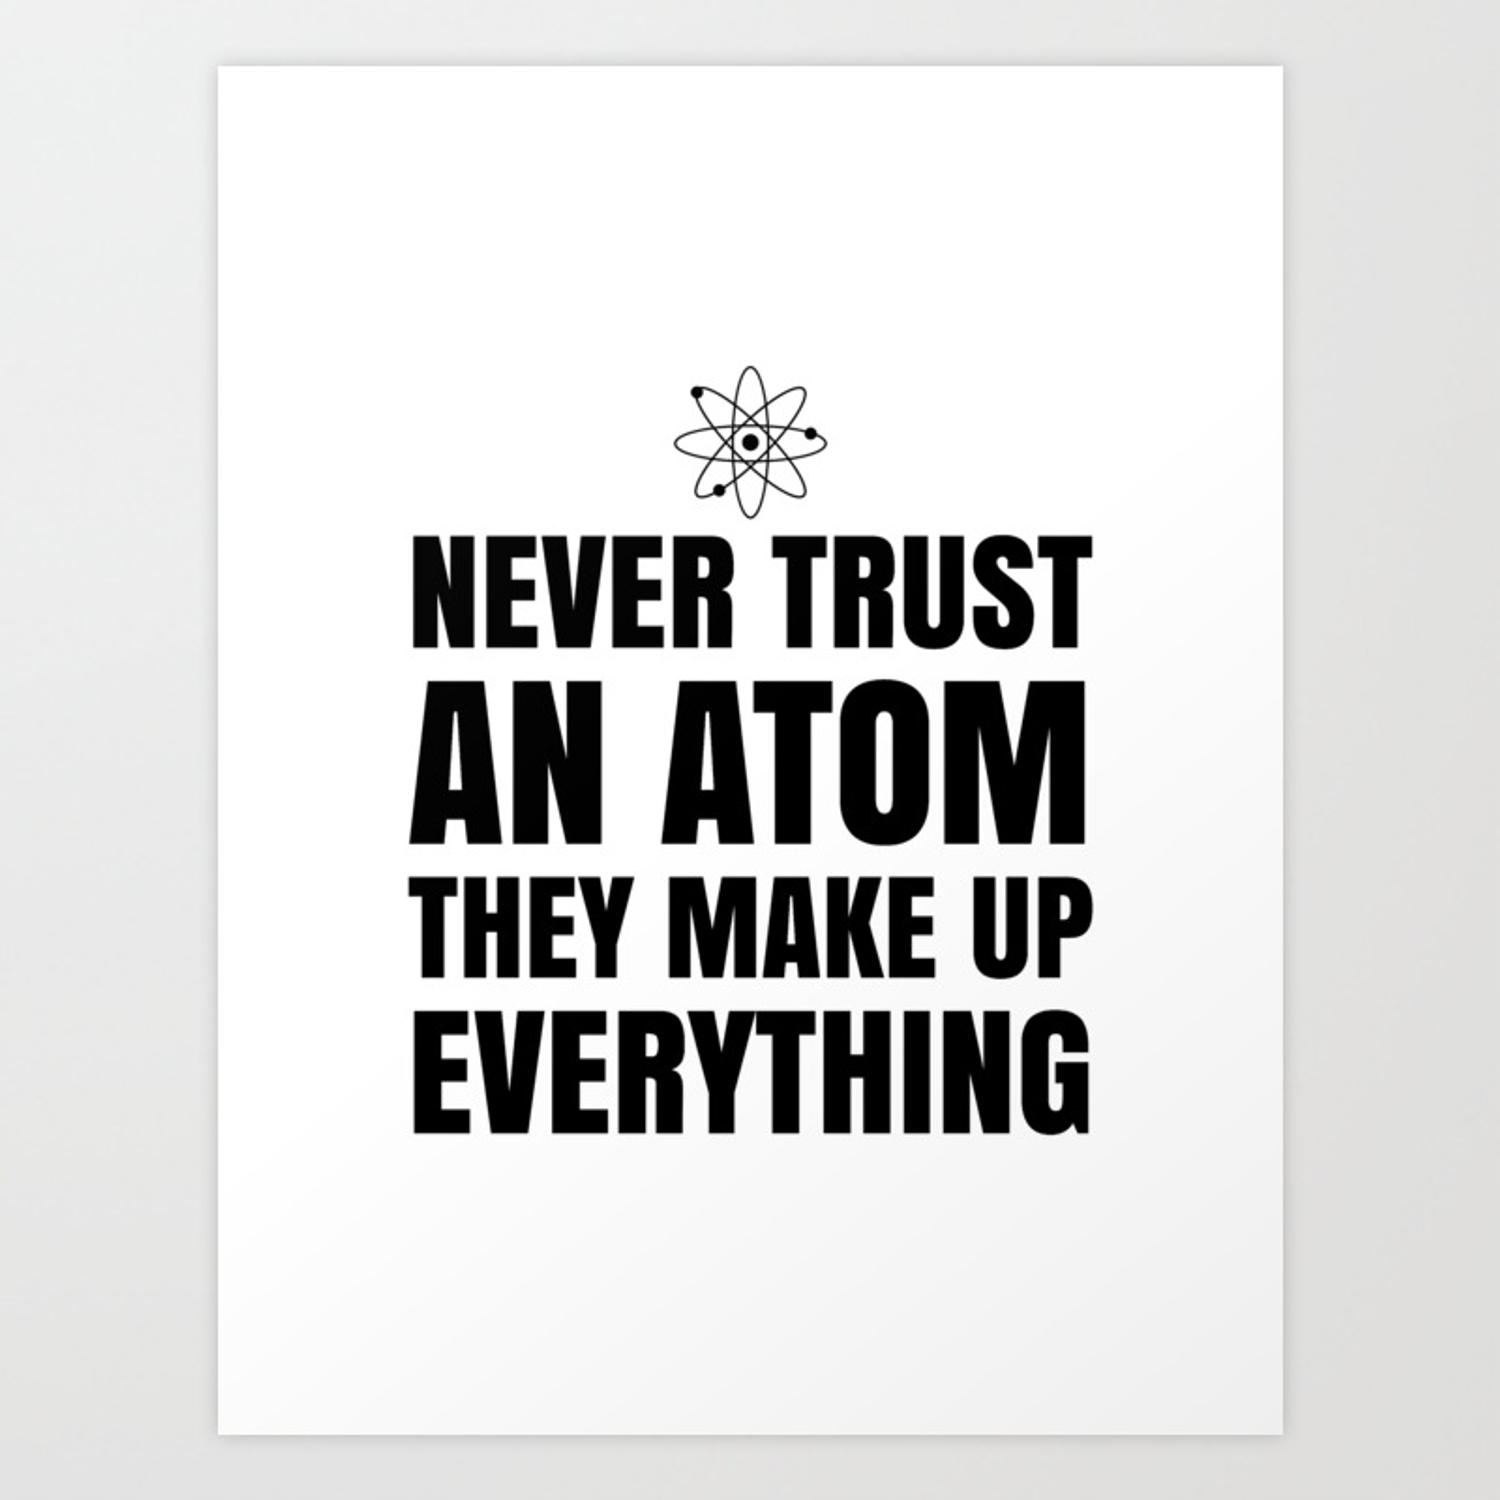 ba89bd989 NEVER TRUST AN ATOM THEY MAKE UP EVERYTHING Art Print by ...